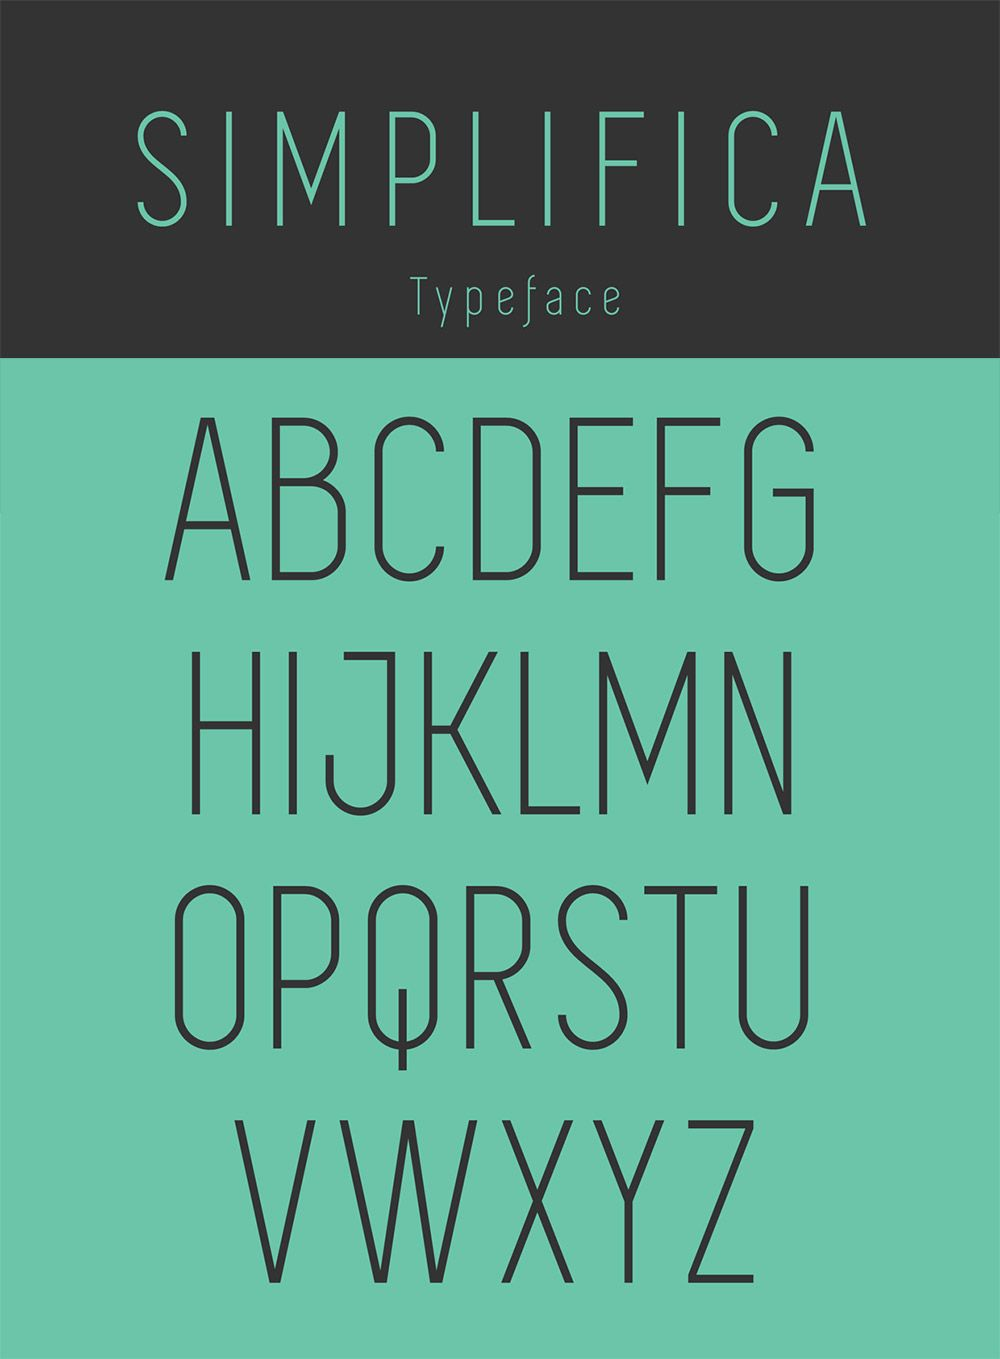 15 All Caps Font Styles For Your High Quality Design